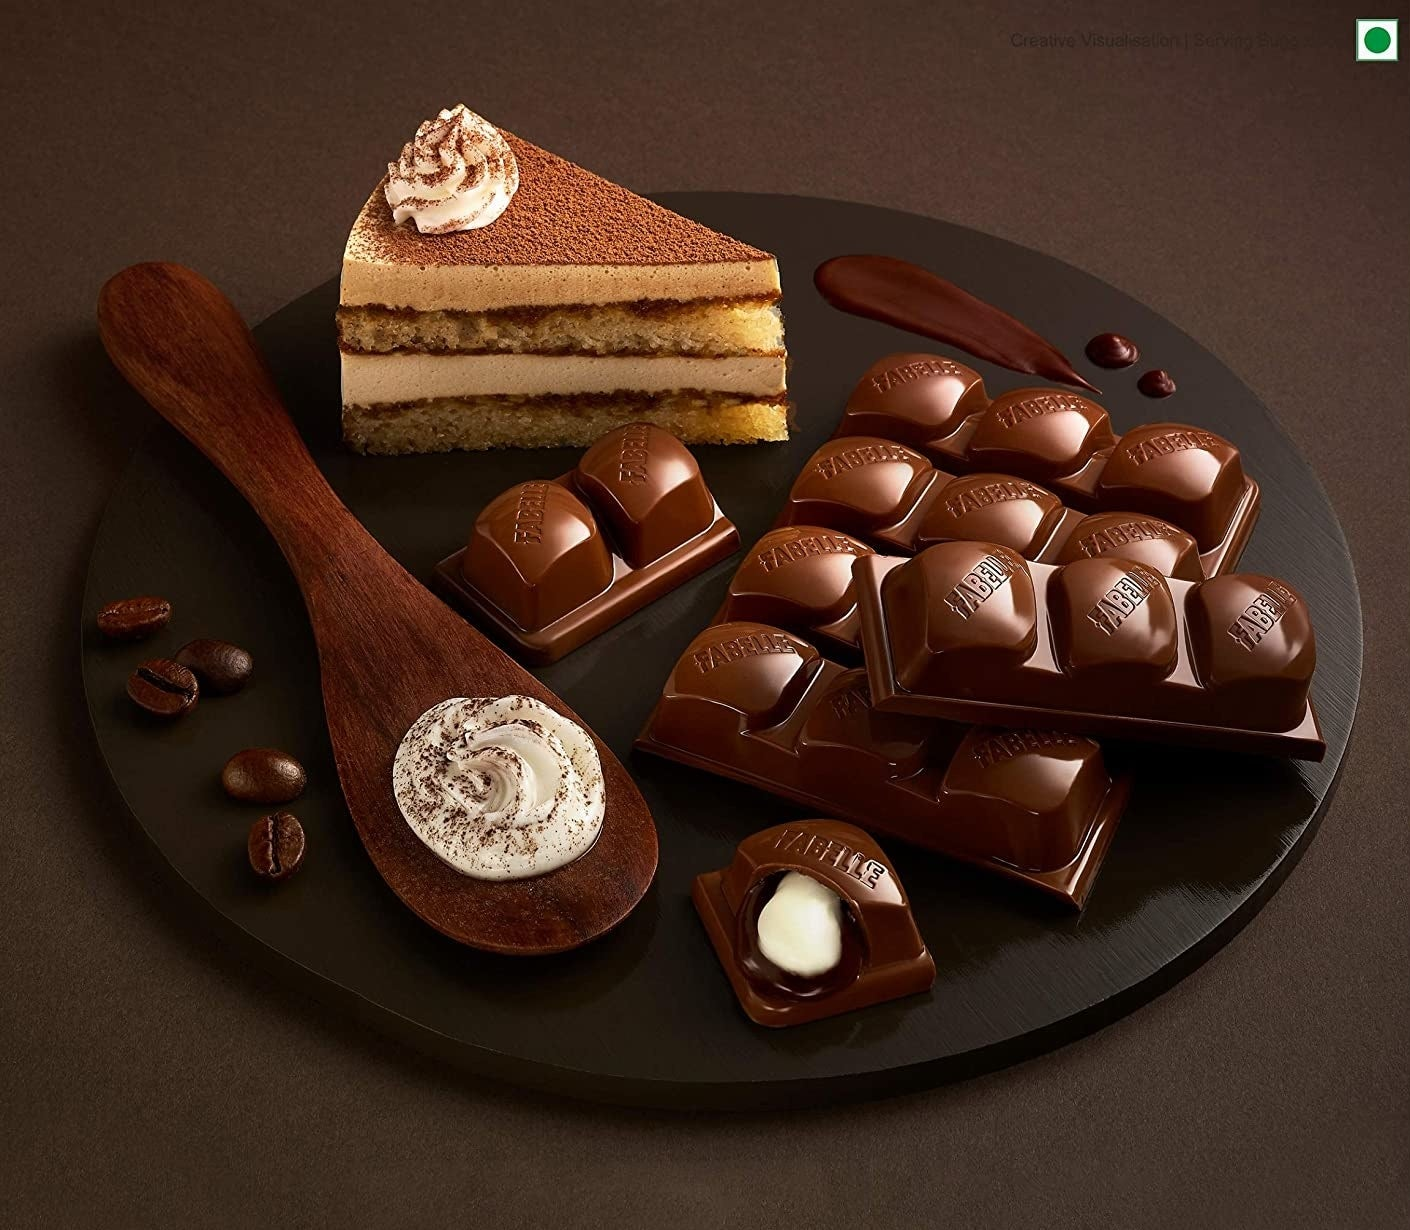 The chocolate bars placed on black plate with coffee beans, mascarpone dusted with cocoa powder, and a slice of tiramisu cake.